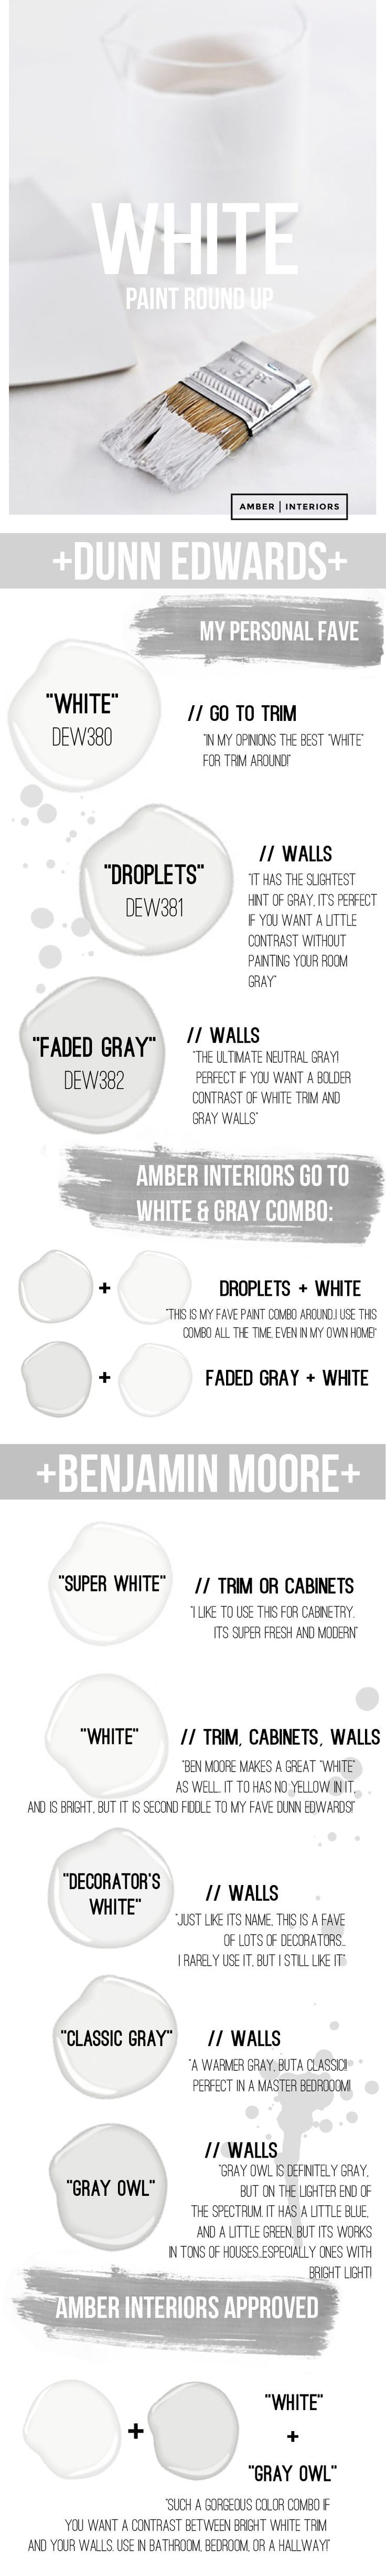 Best White Paint Colors best 25+ best white paint ideas only on pinterest | white paint